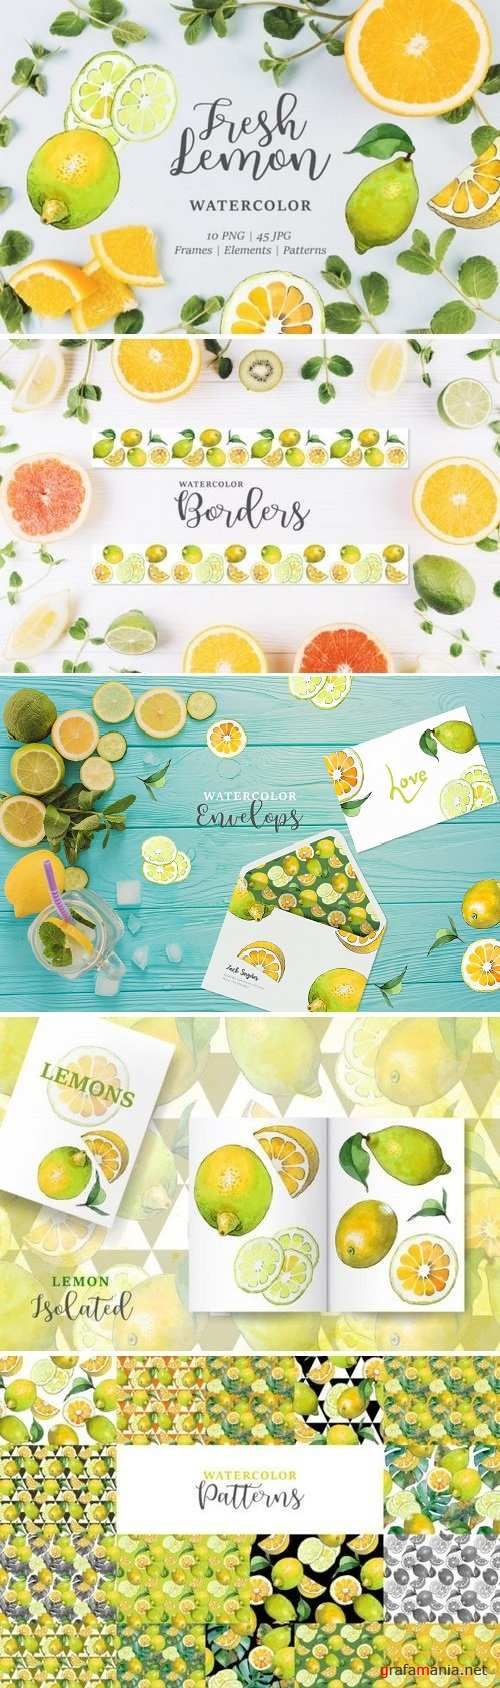 Lemon Watercolor png 3358192